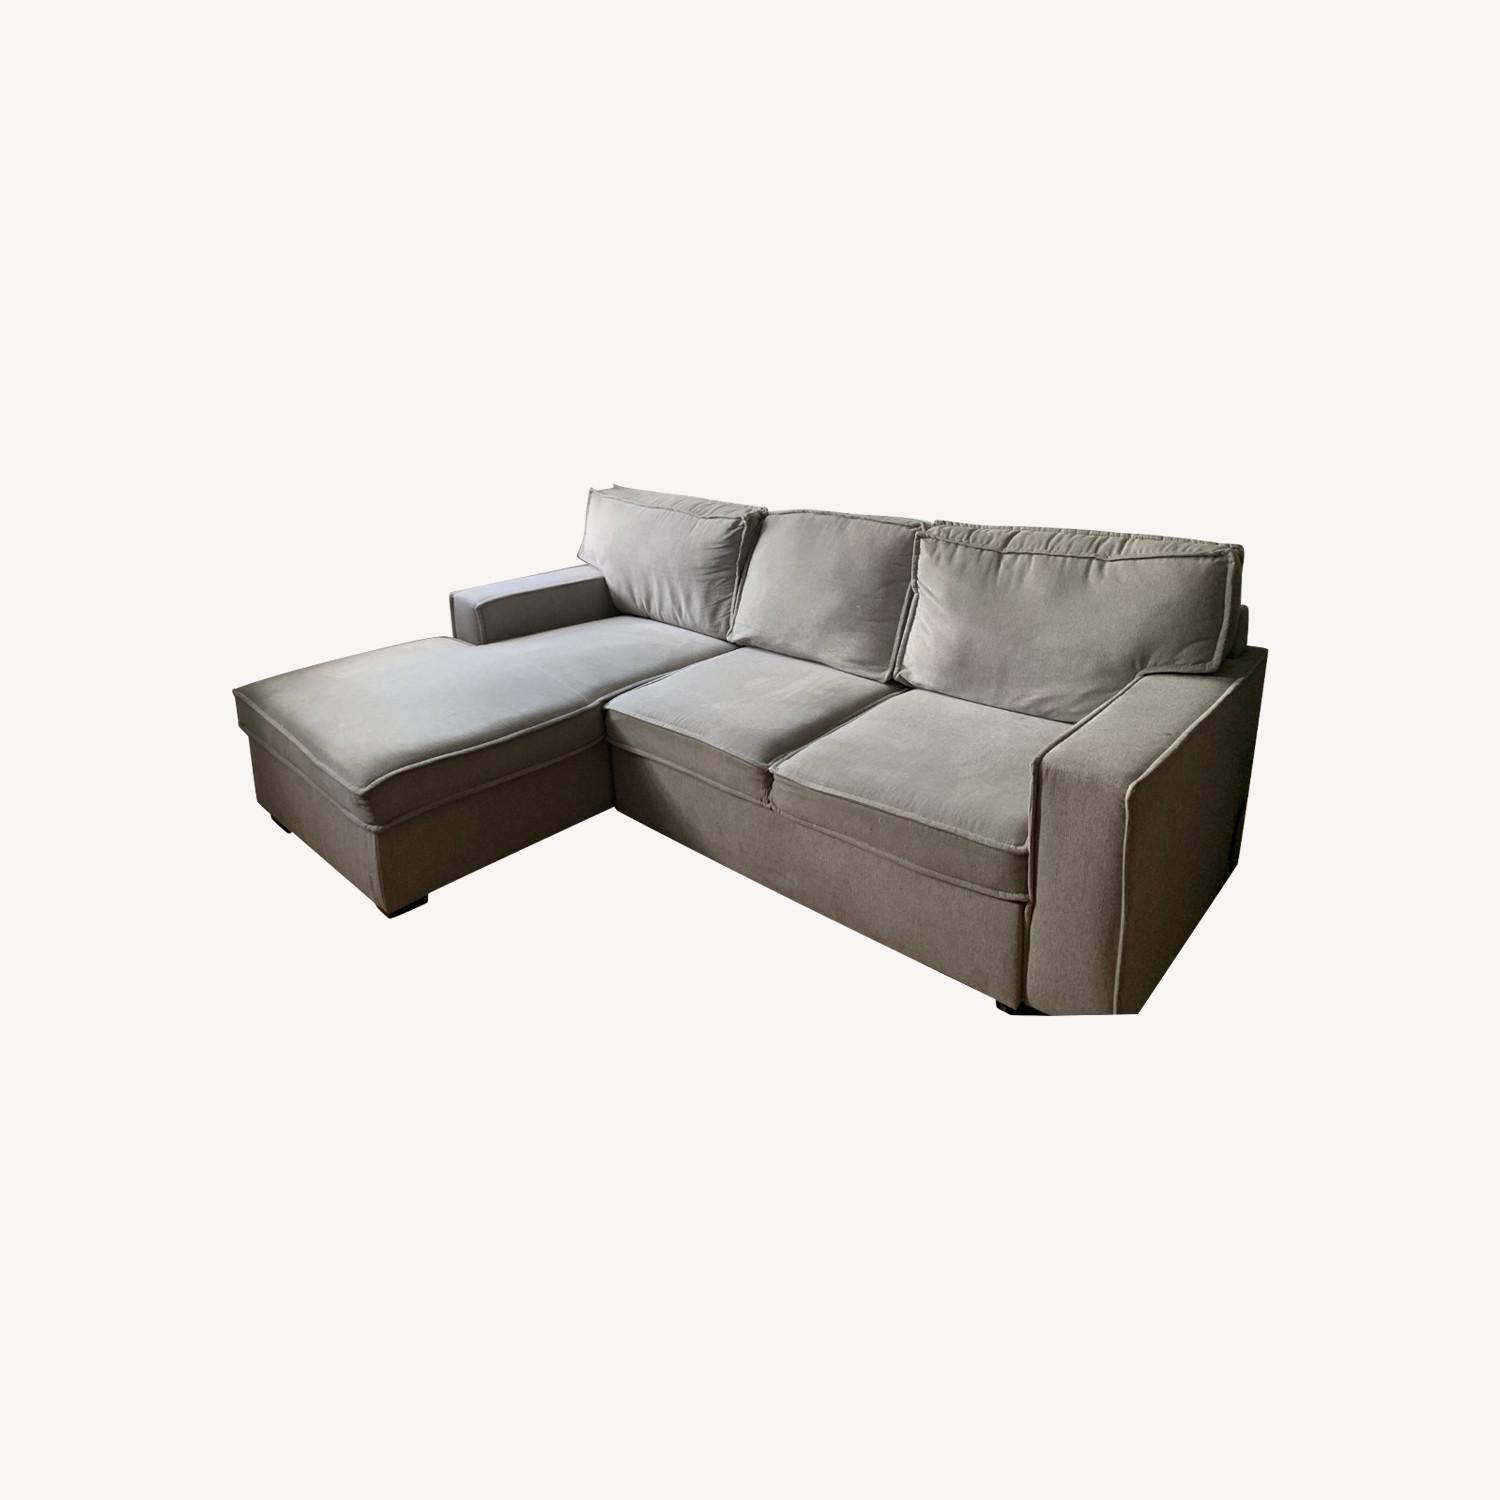 Bob's Track Arm Sectional with Pop-Up Sleeper - image-0